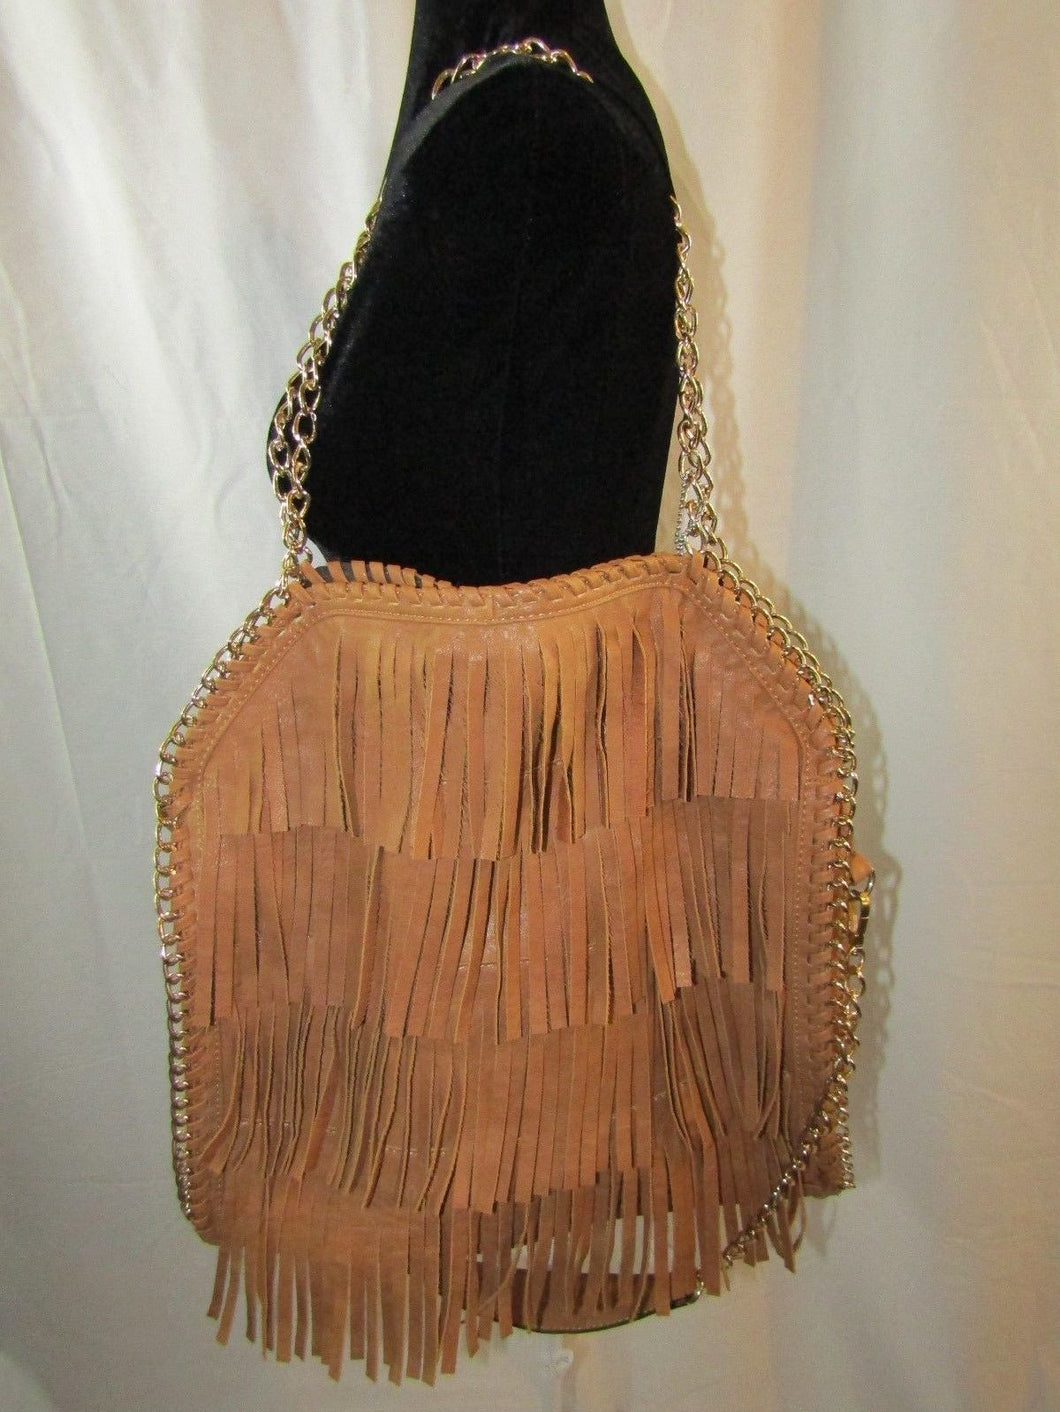 YOKI Tan Leather Fringe Goldtone Chain Shoulder Strap Handbag - NWT